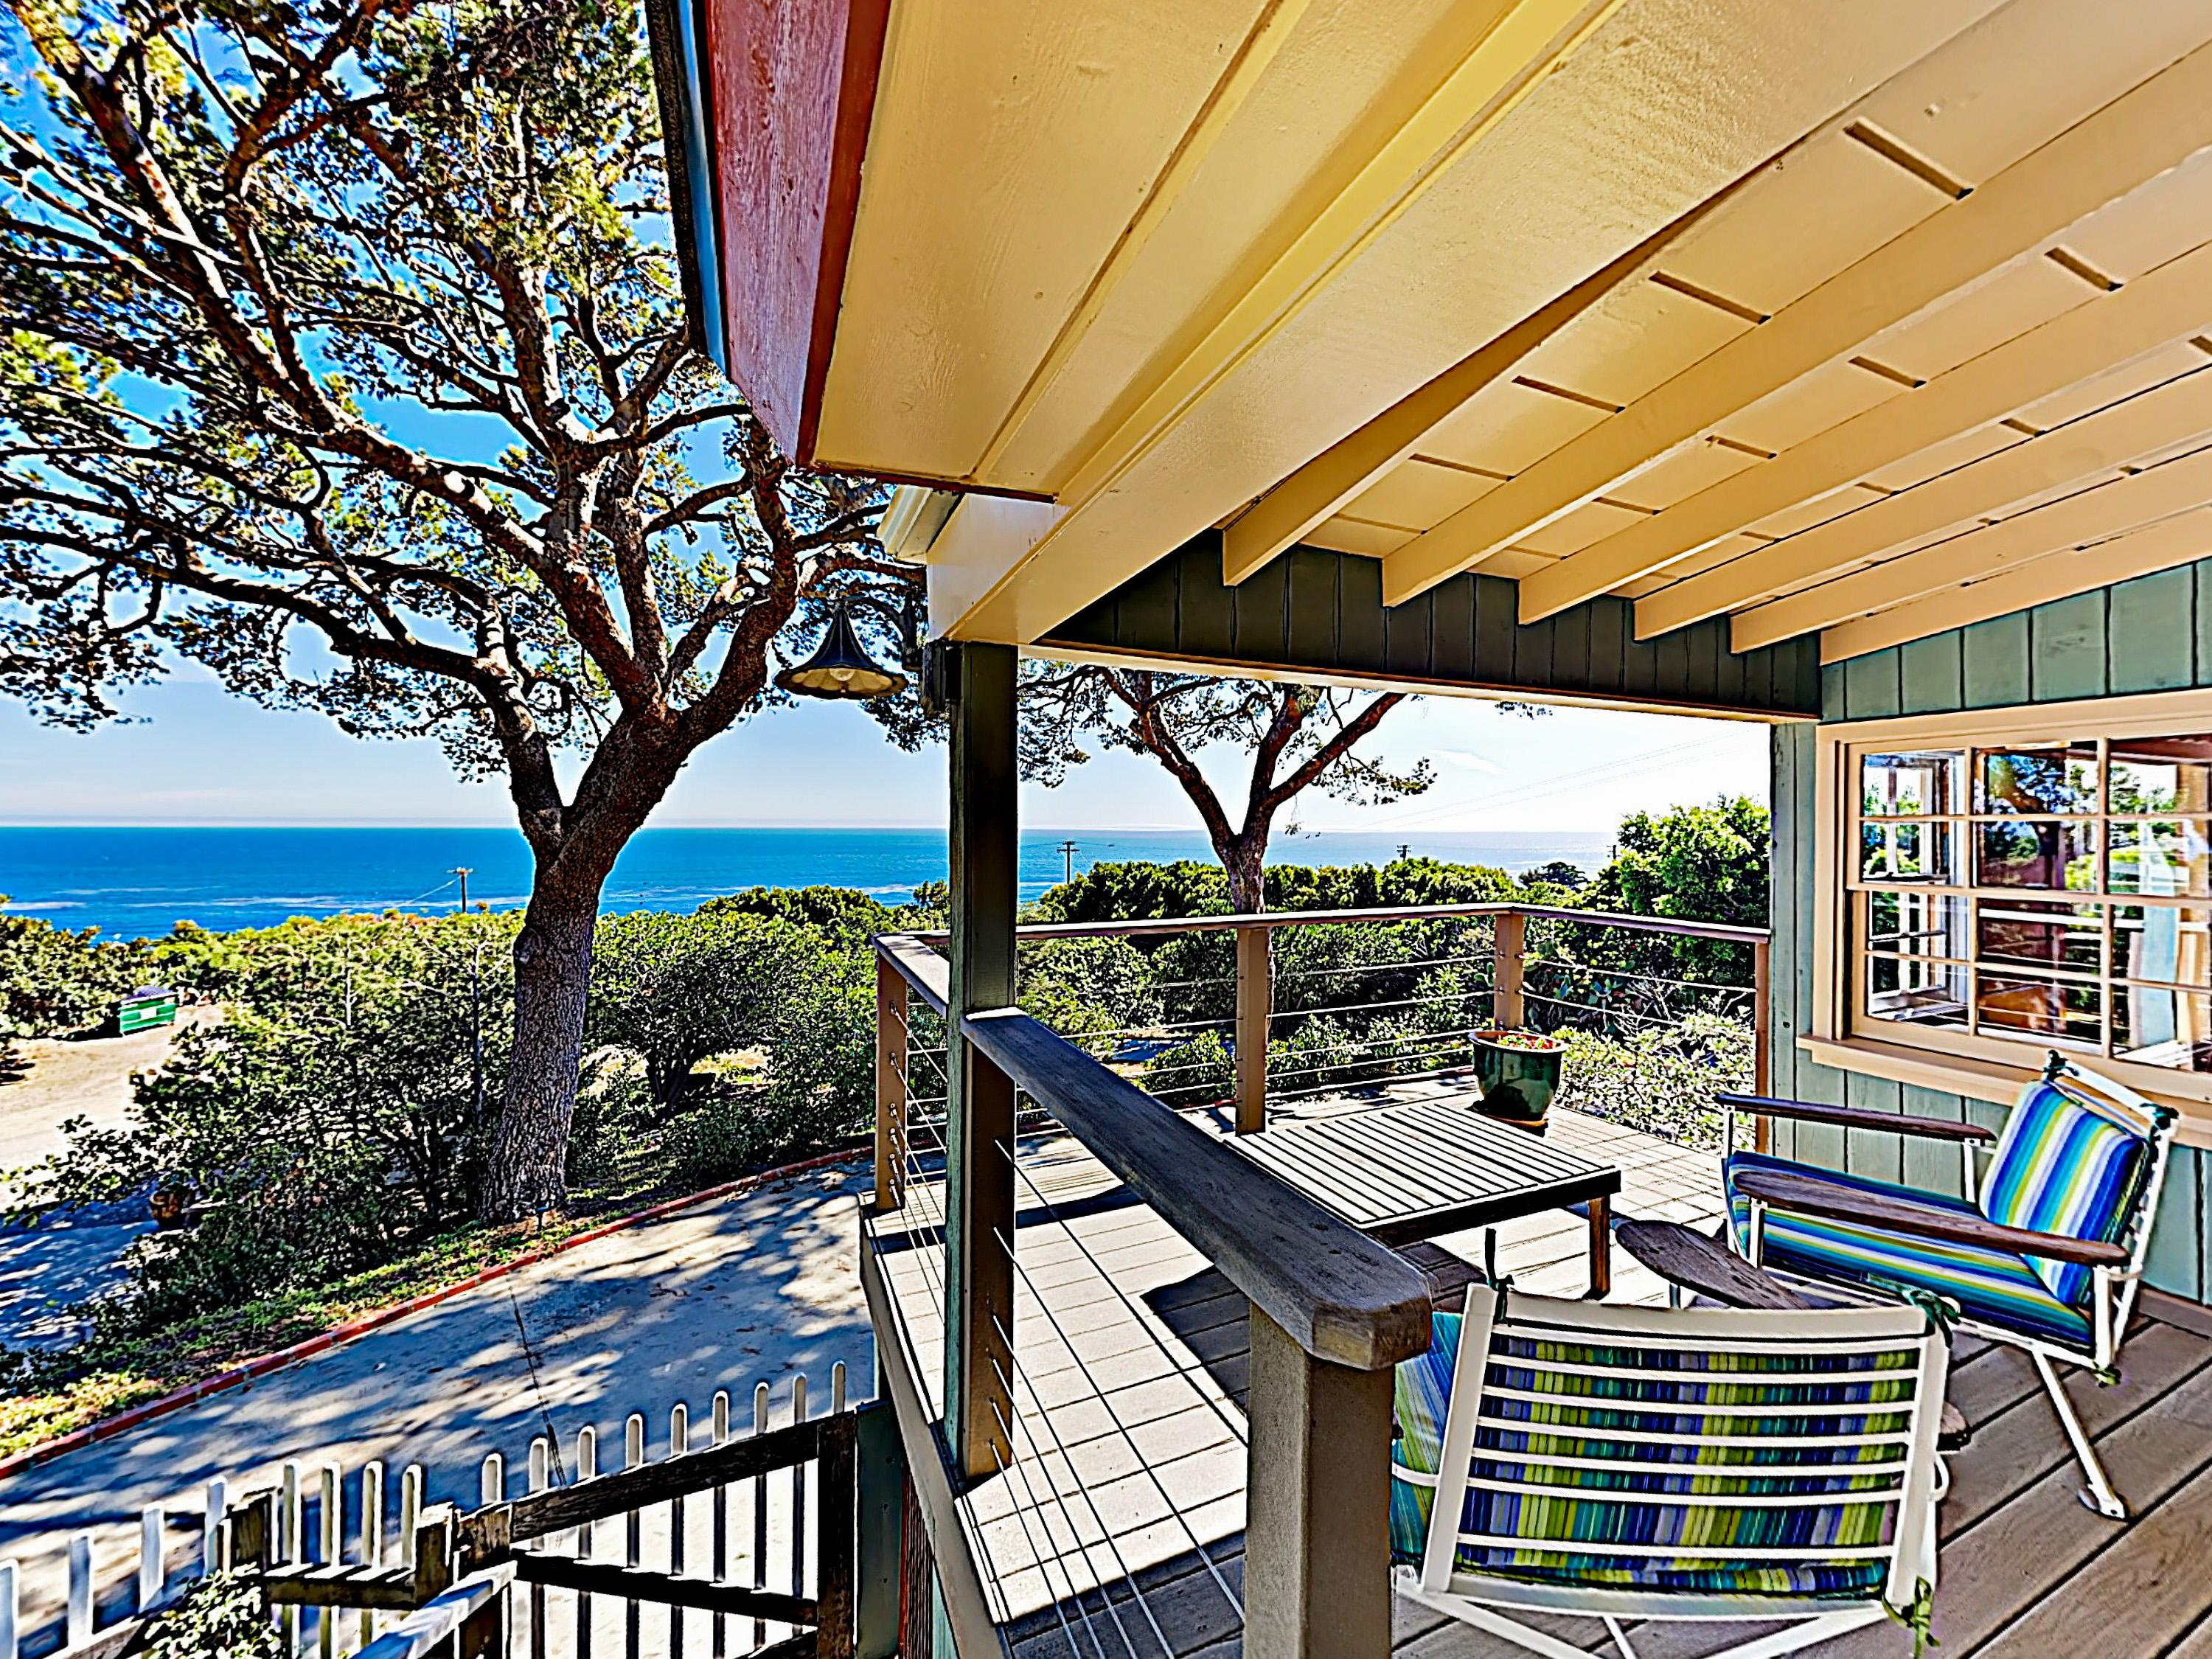 Welcome to Malibu! This home is professionally managed by TurnKey Vacation Rentals.